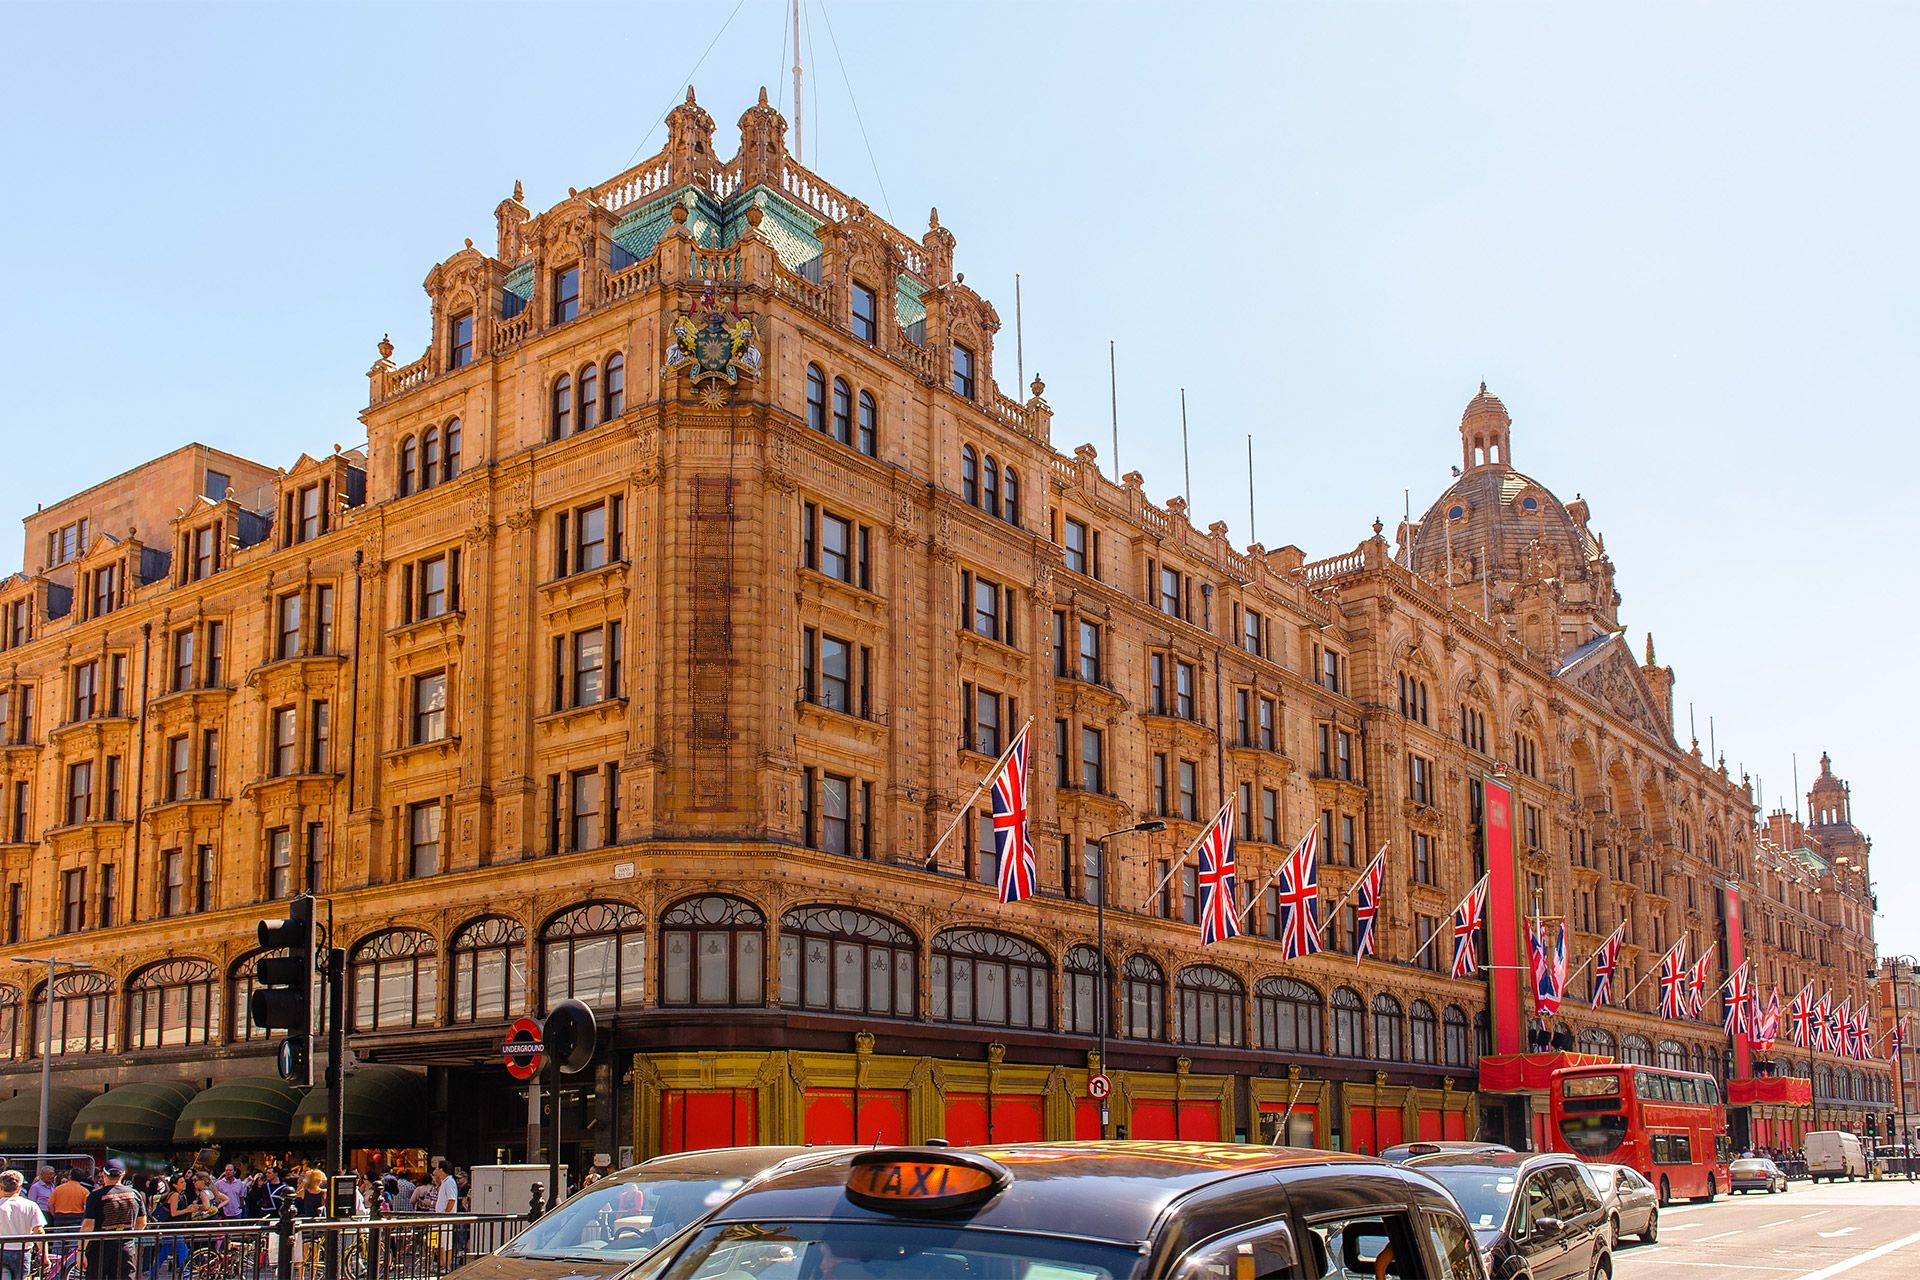 Visit the famous Harrods department store in Knightsbridge